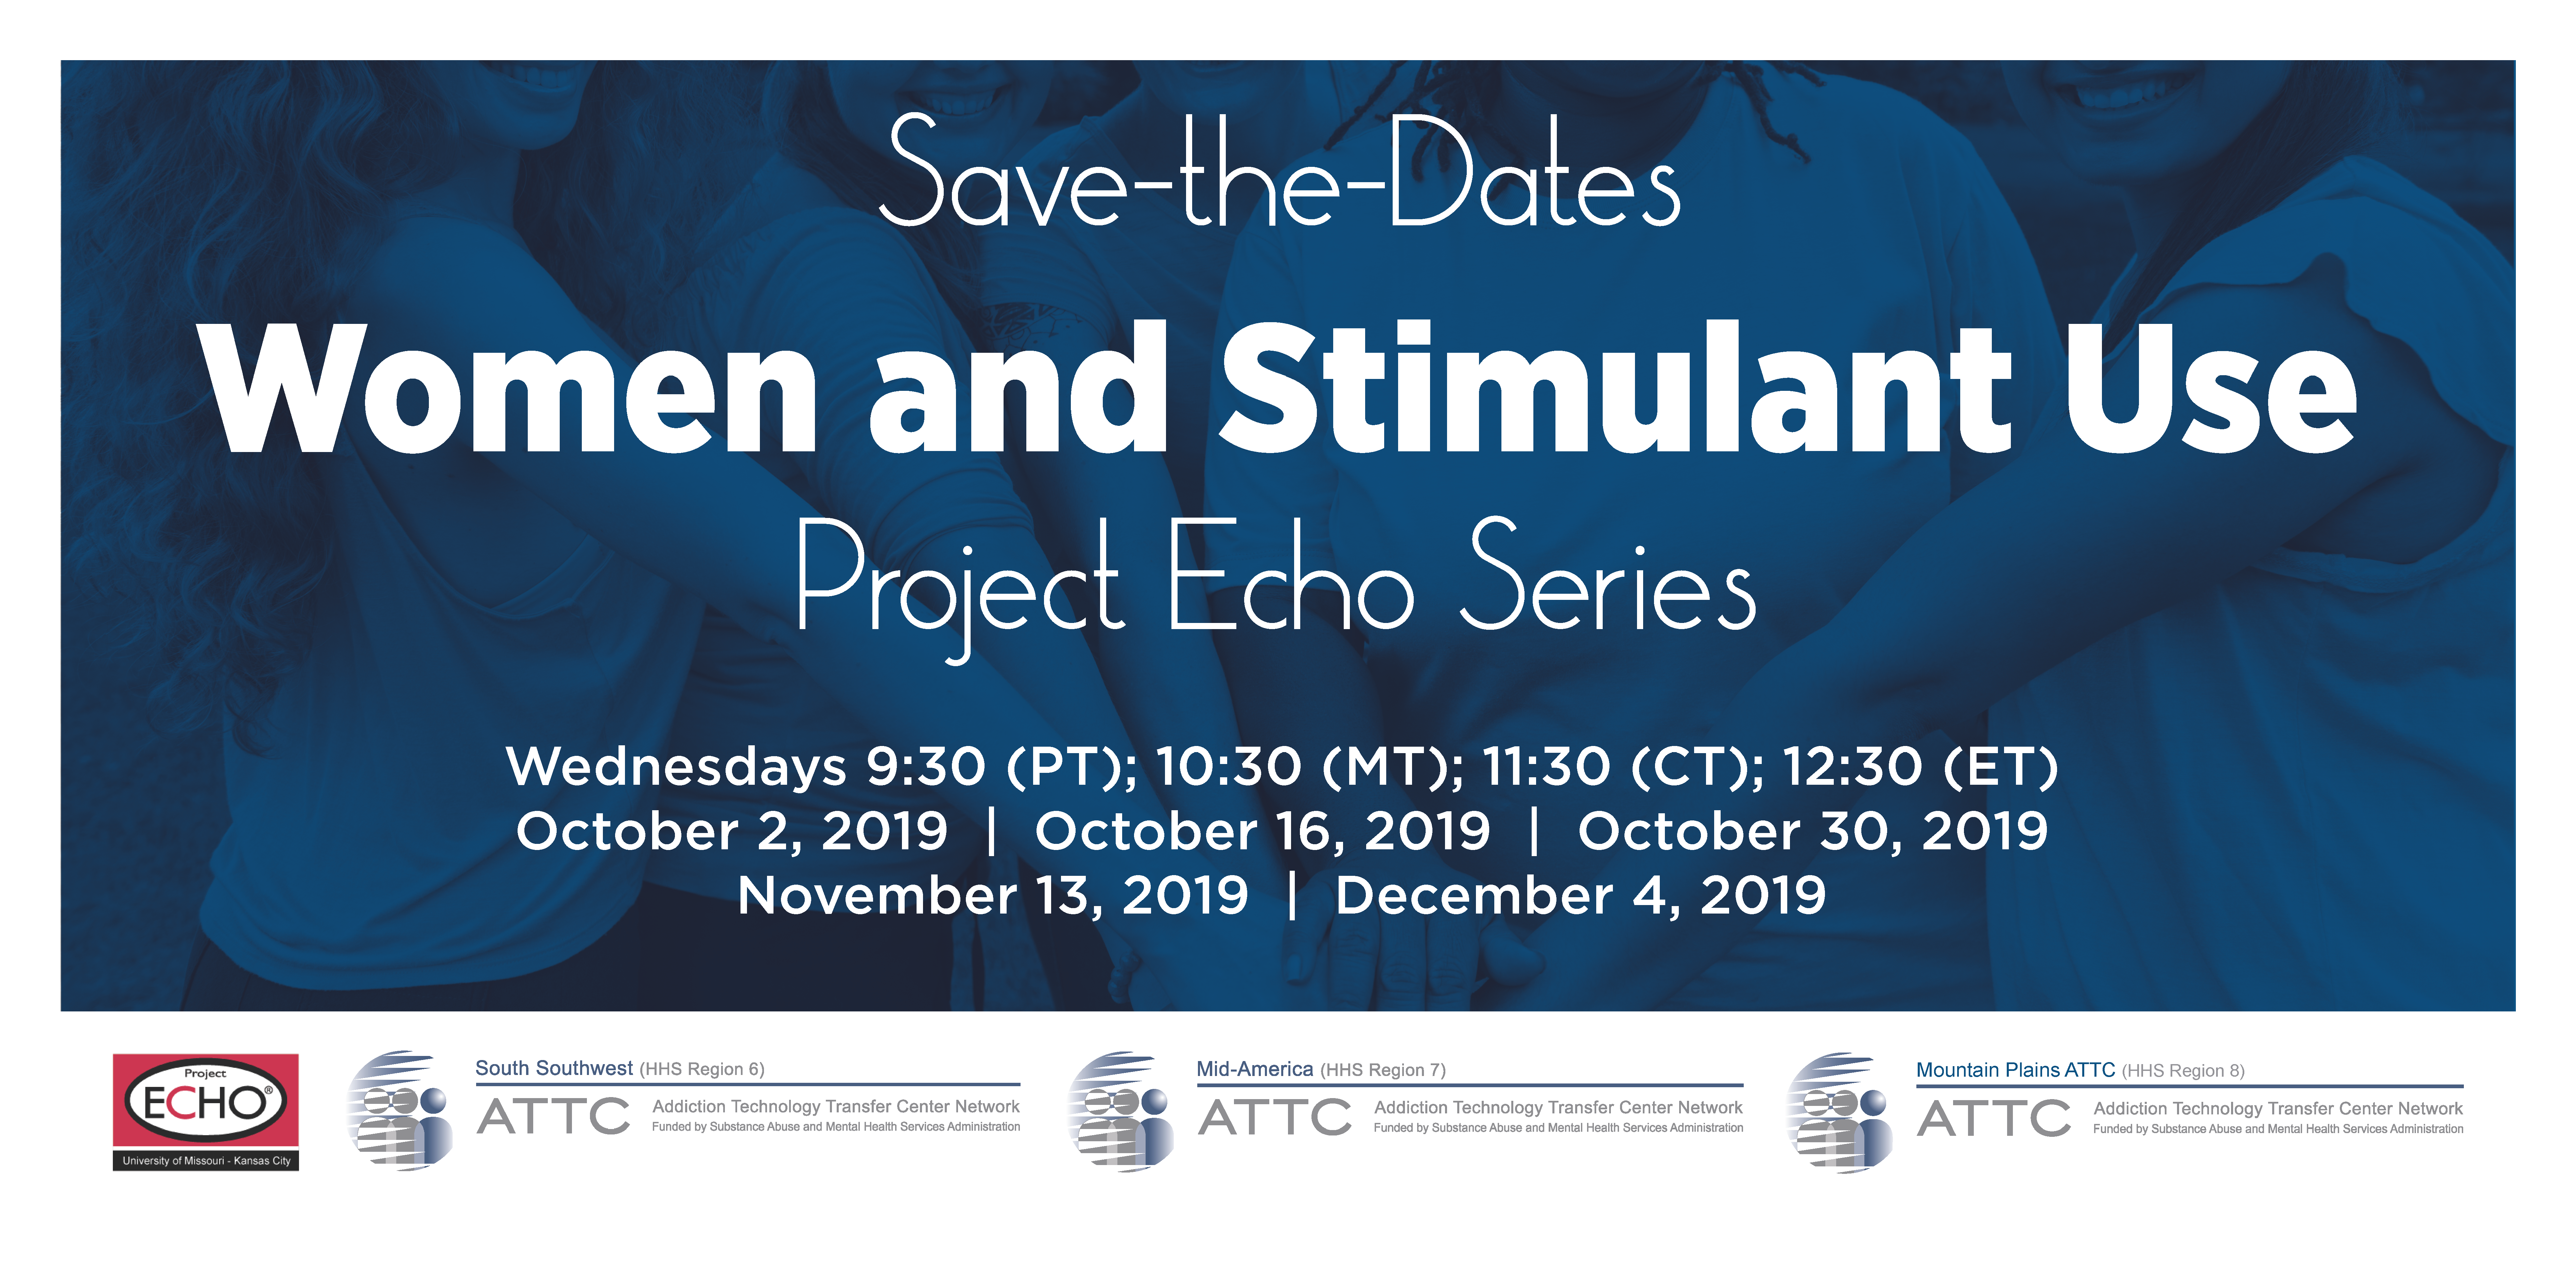 Women and Stimulant Use Project ECHO Series Save-the-Date